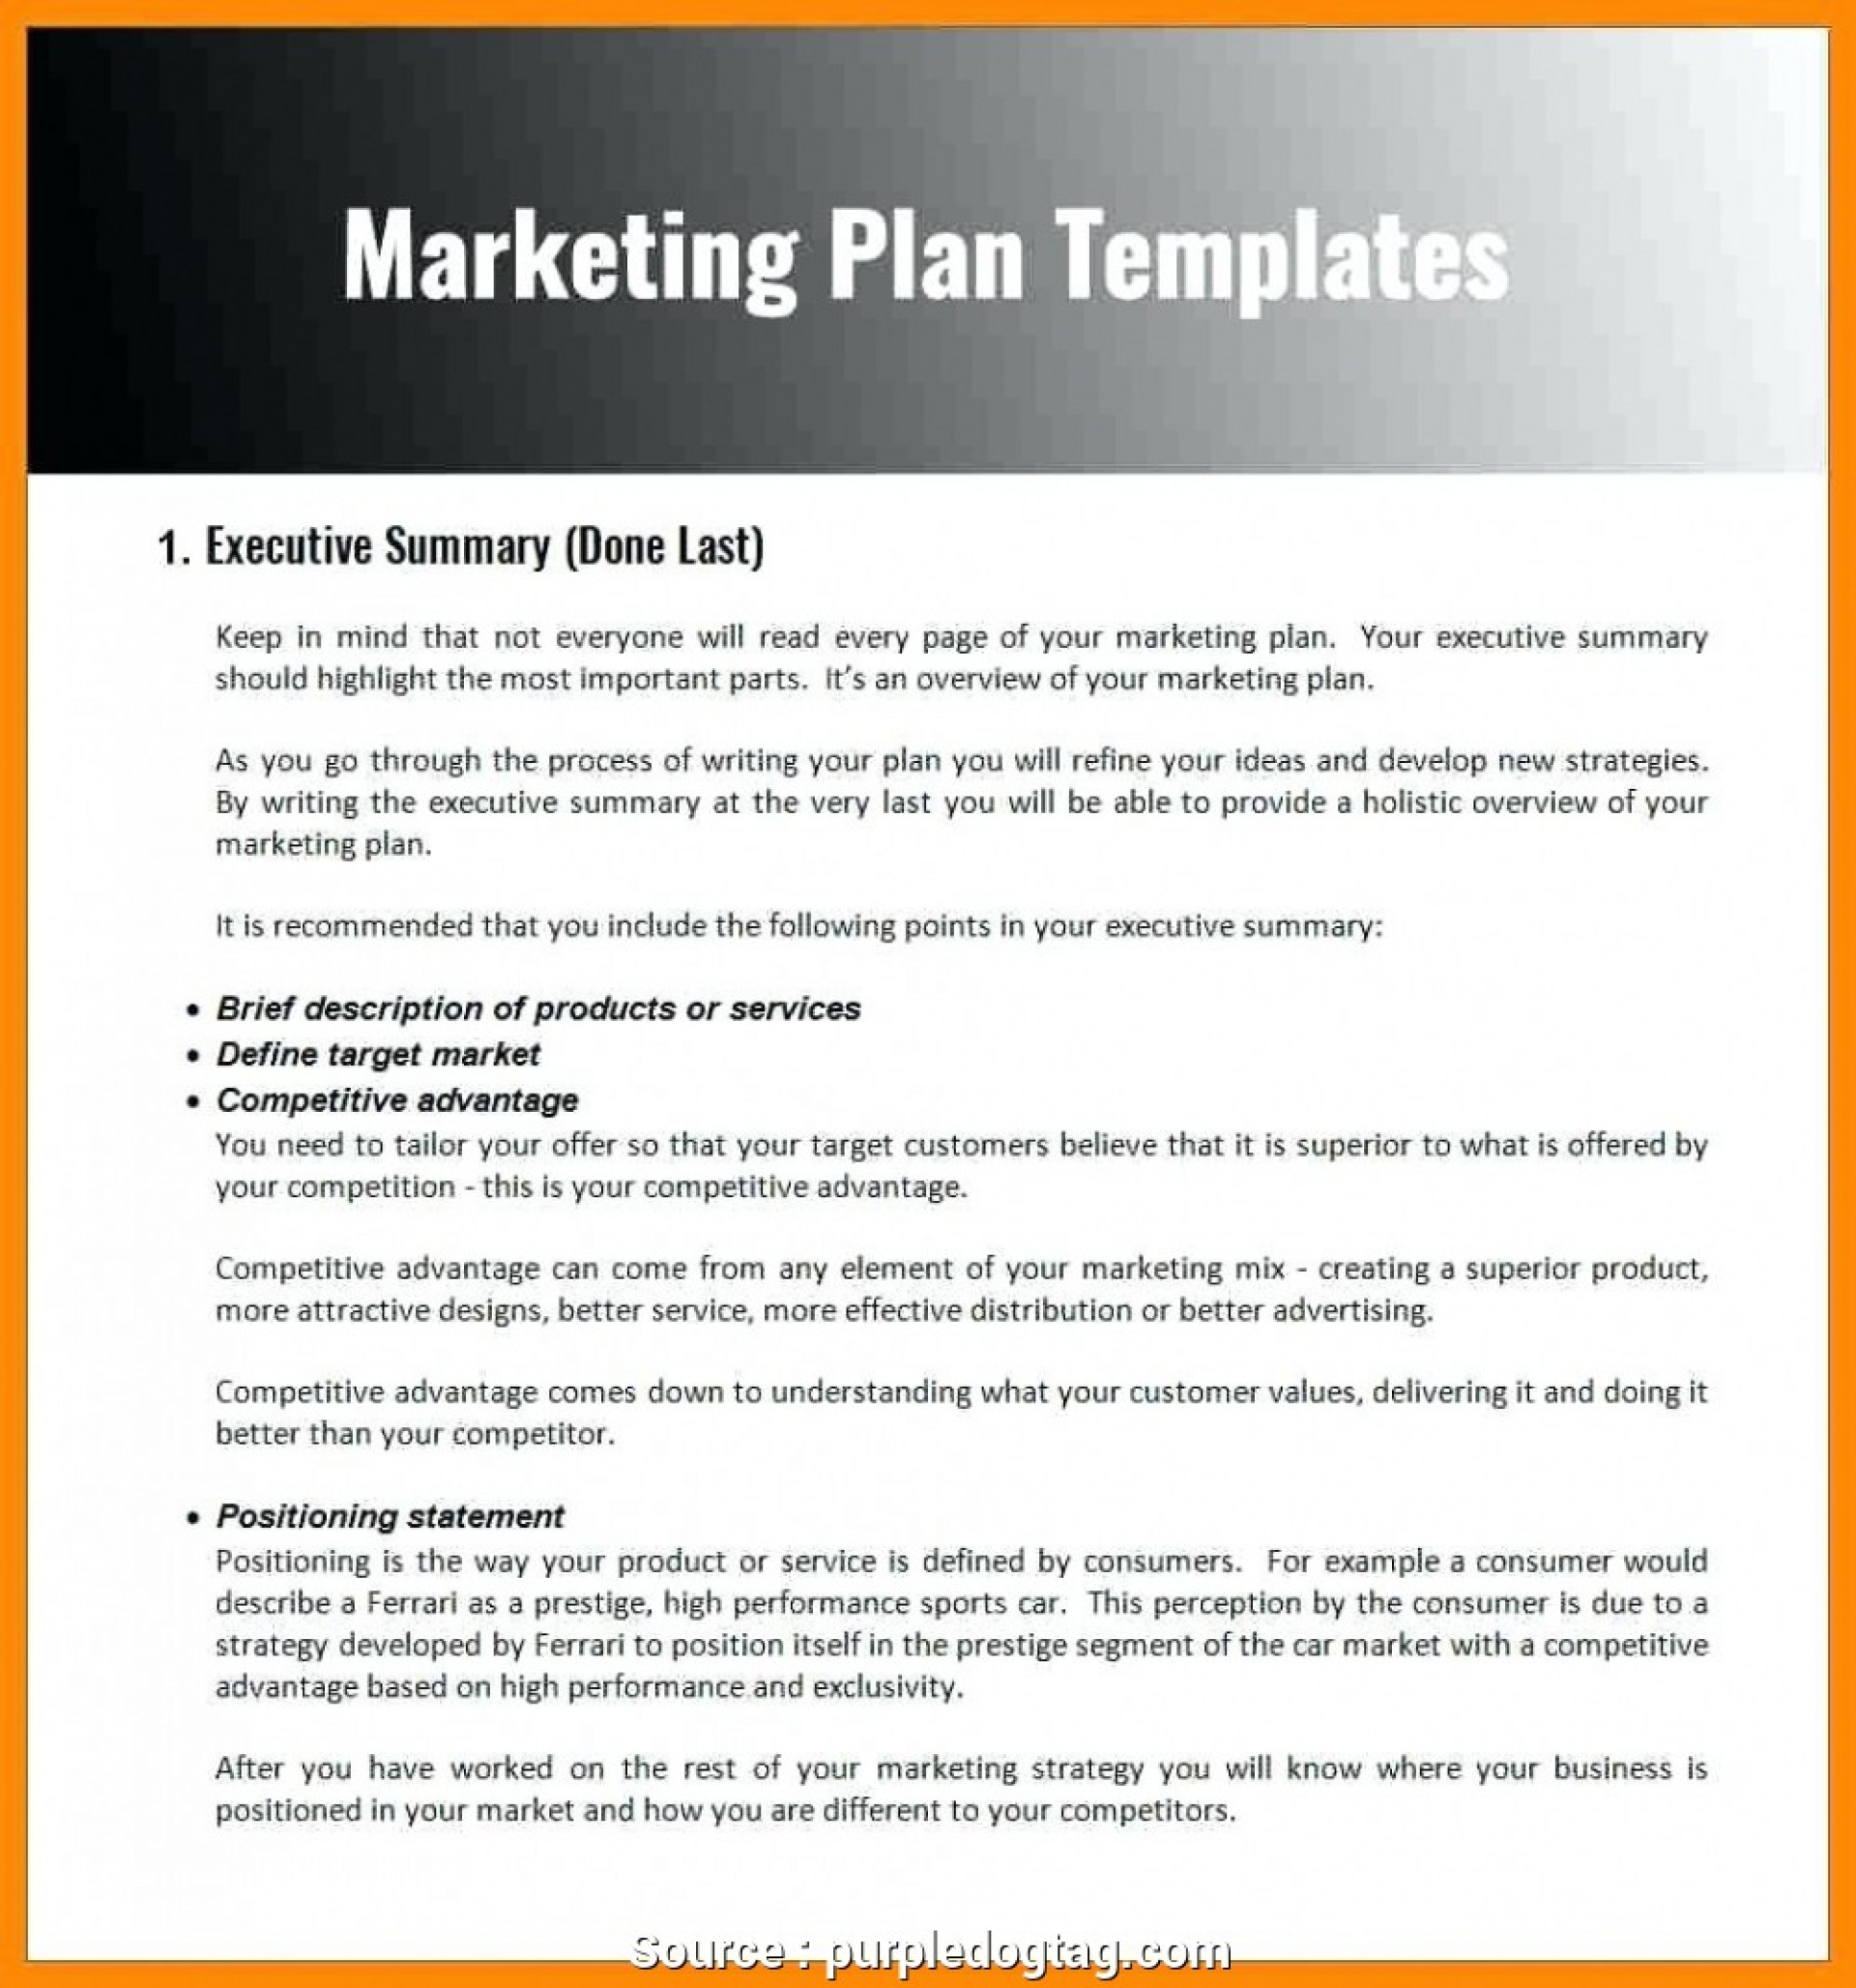 024 Research Paper 20market Plan20mplate Digital Marketing Pdf Study Music Presentation Ppt Product20 Powerpointmat Unique Powerpoint Format For Sample 1920